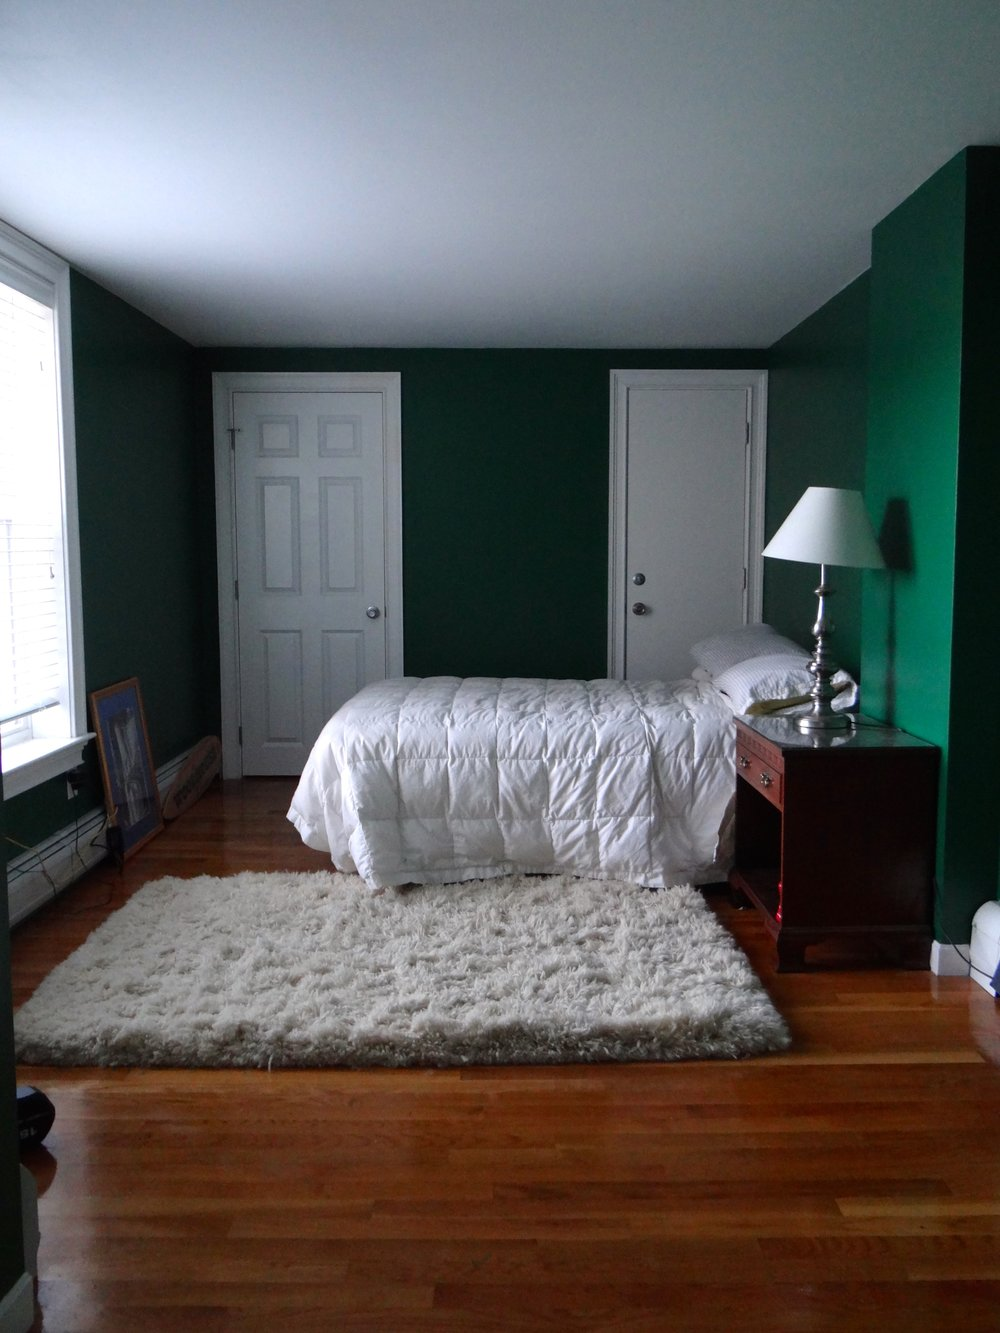 Bedroom V2 - girl, green is not your color